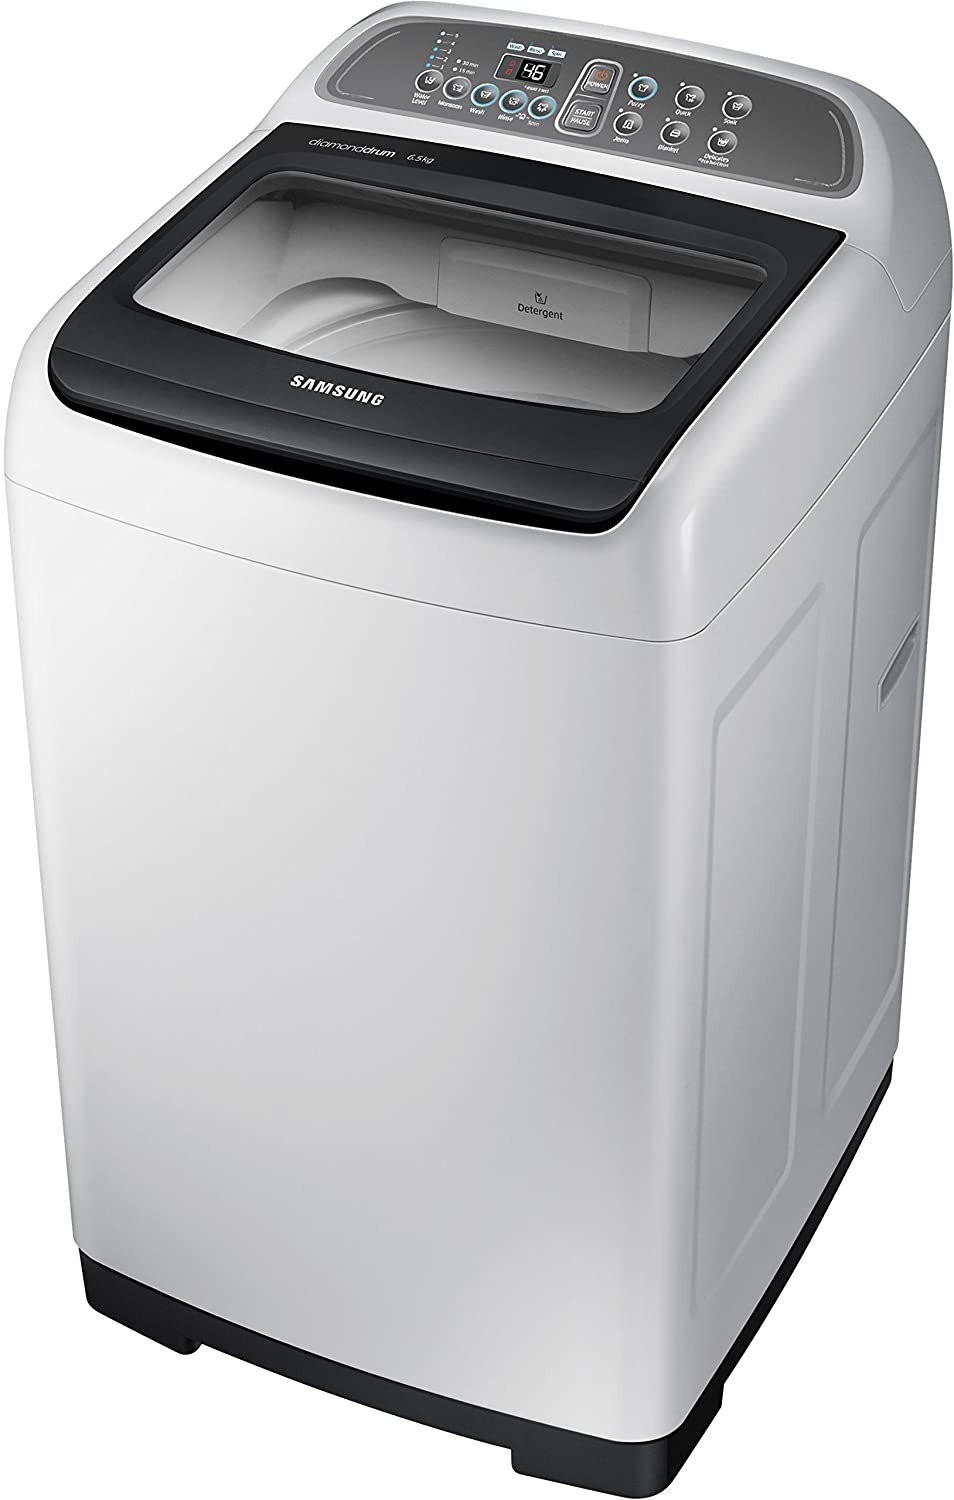 7 Best Top Load Washing Machines in India - With Price (2020)